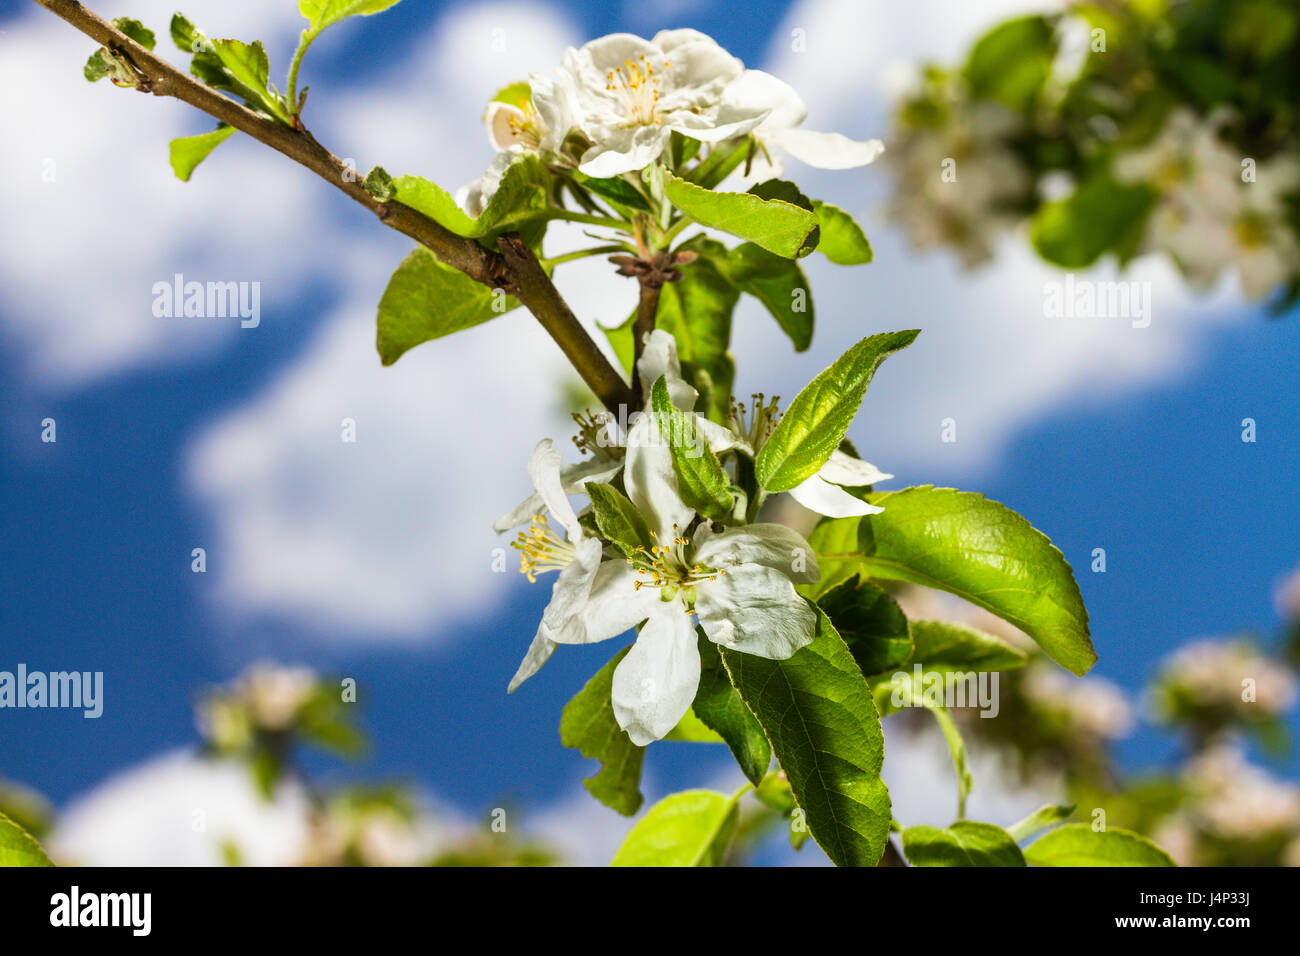 bluming apple tree - Stock Image